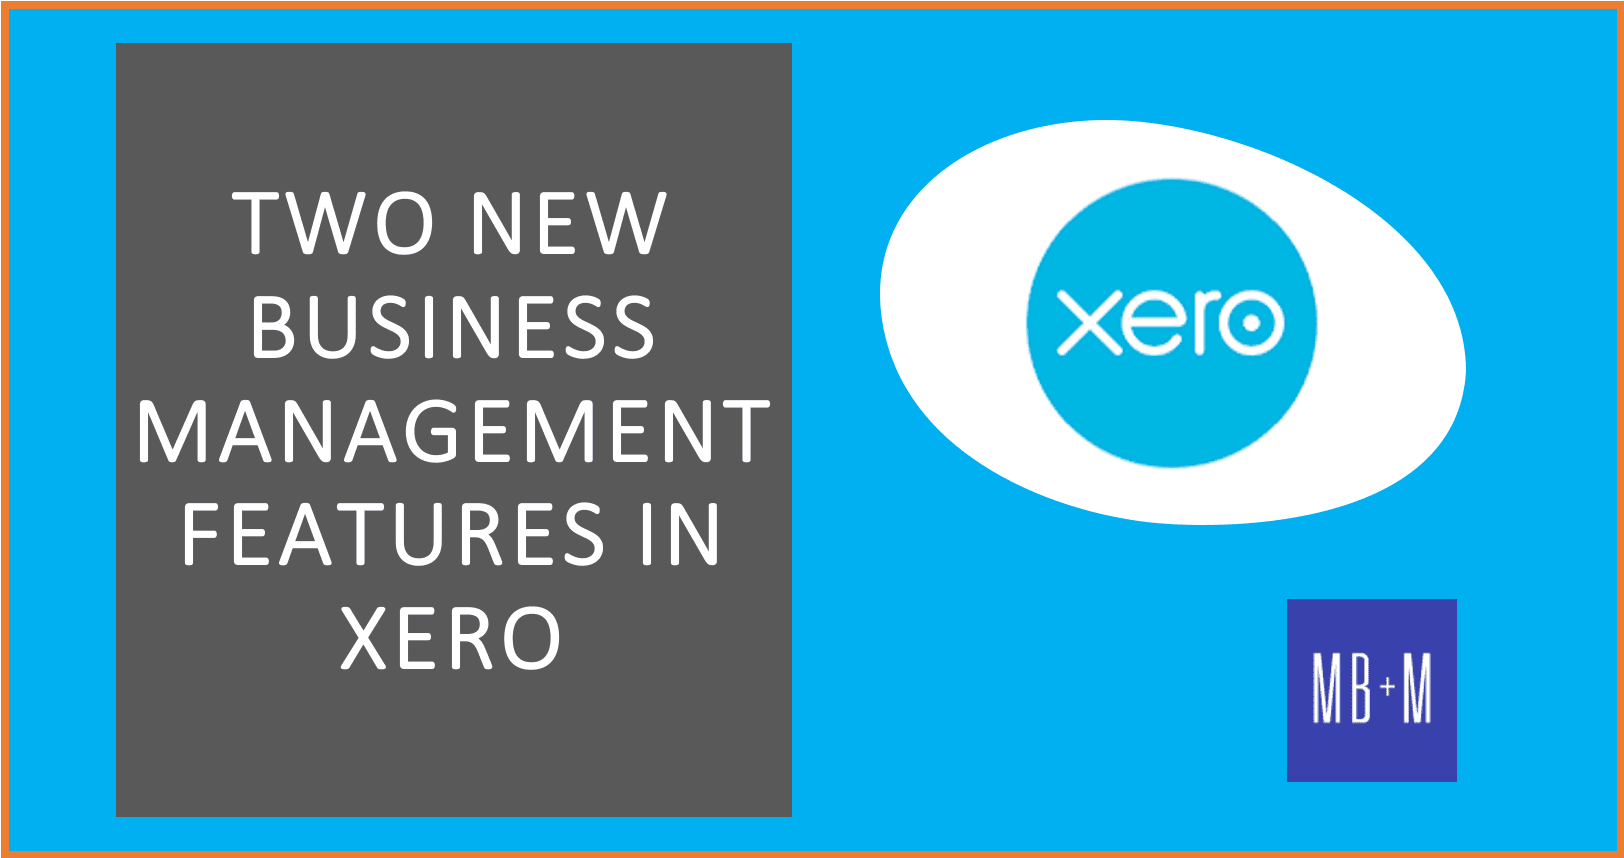 Two New Business Management Features in Xero